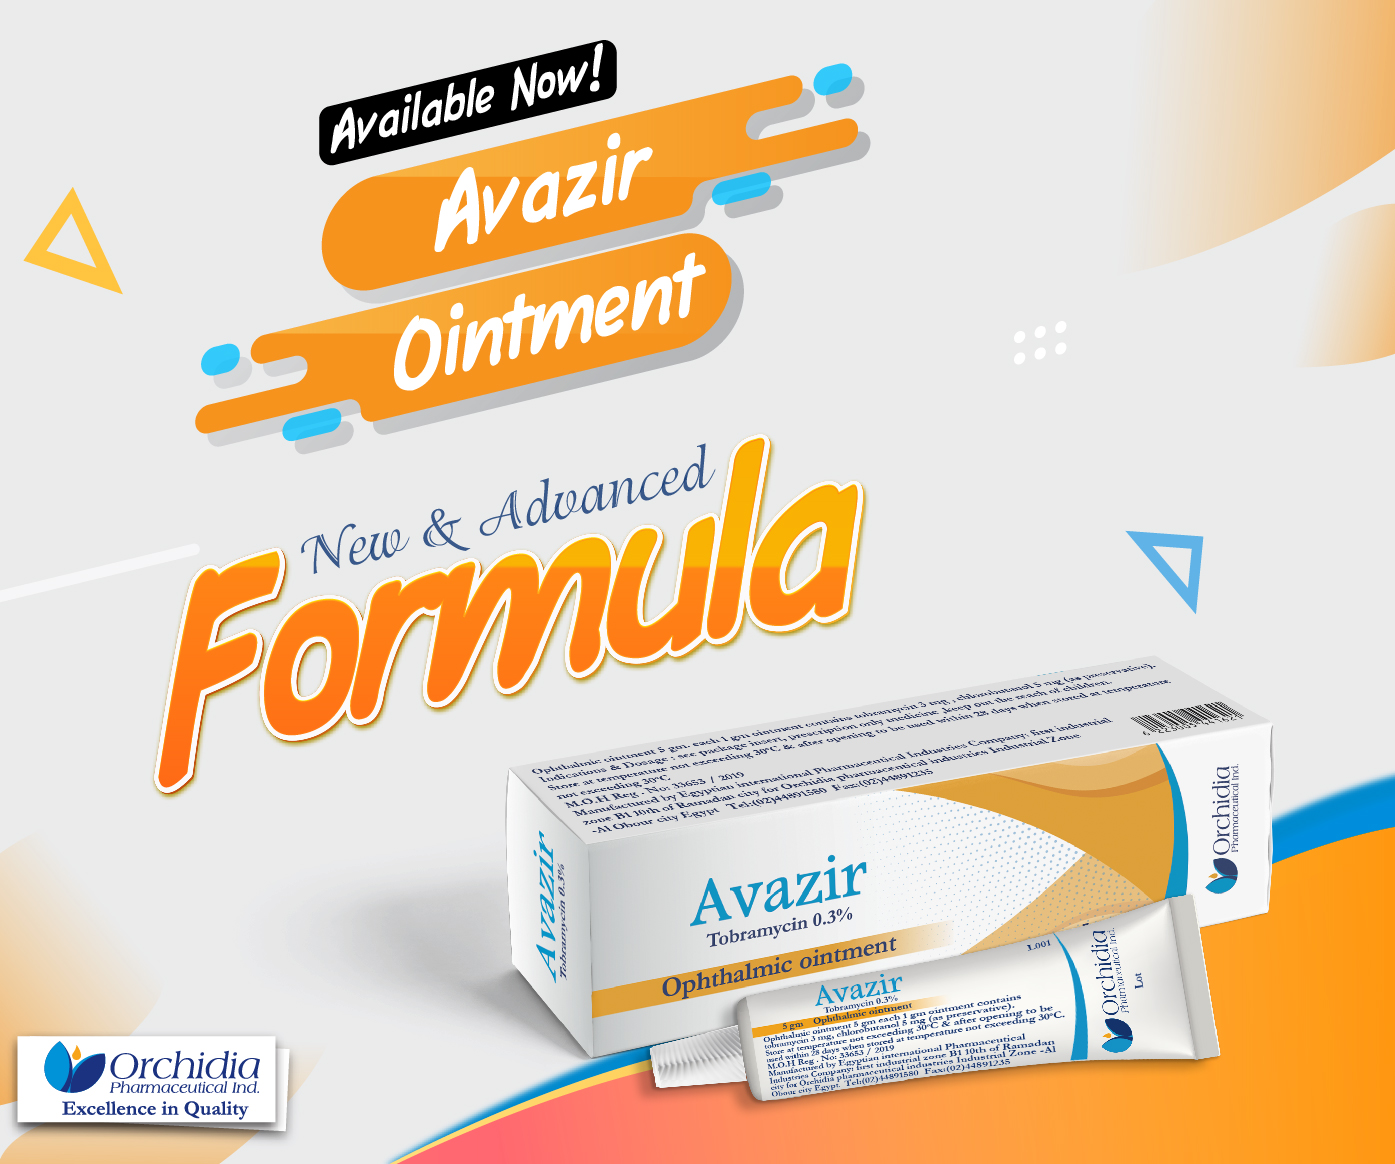 Avazir eye ointment (Tobramycin 0.3) -  the new advanced formula is available now in Egyptian market.